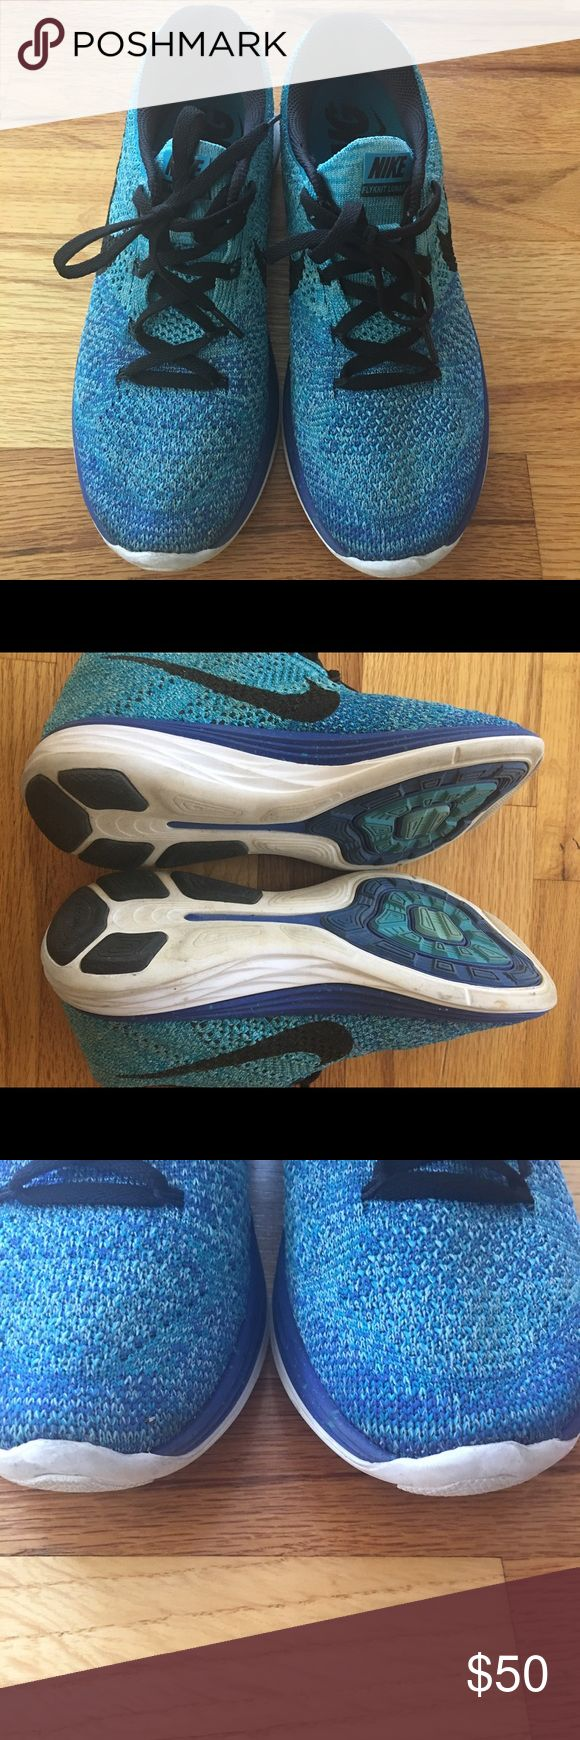 Nike Lunar 3 Running Shoes Very good preowned condition as photos Nike Shoes Athletic Shoes